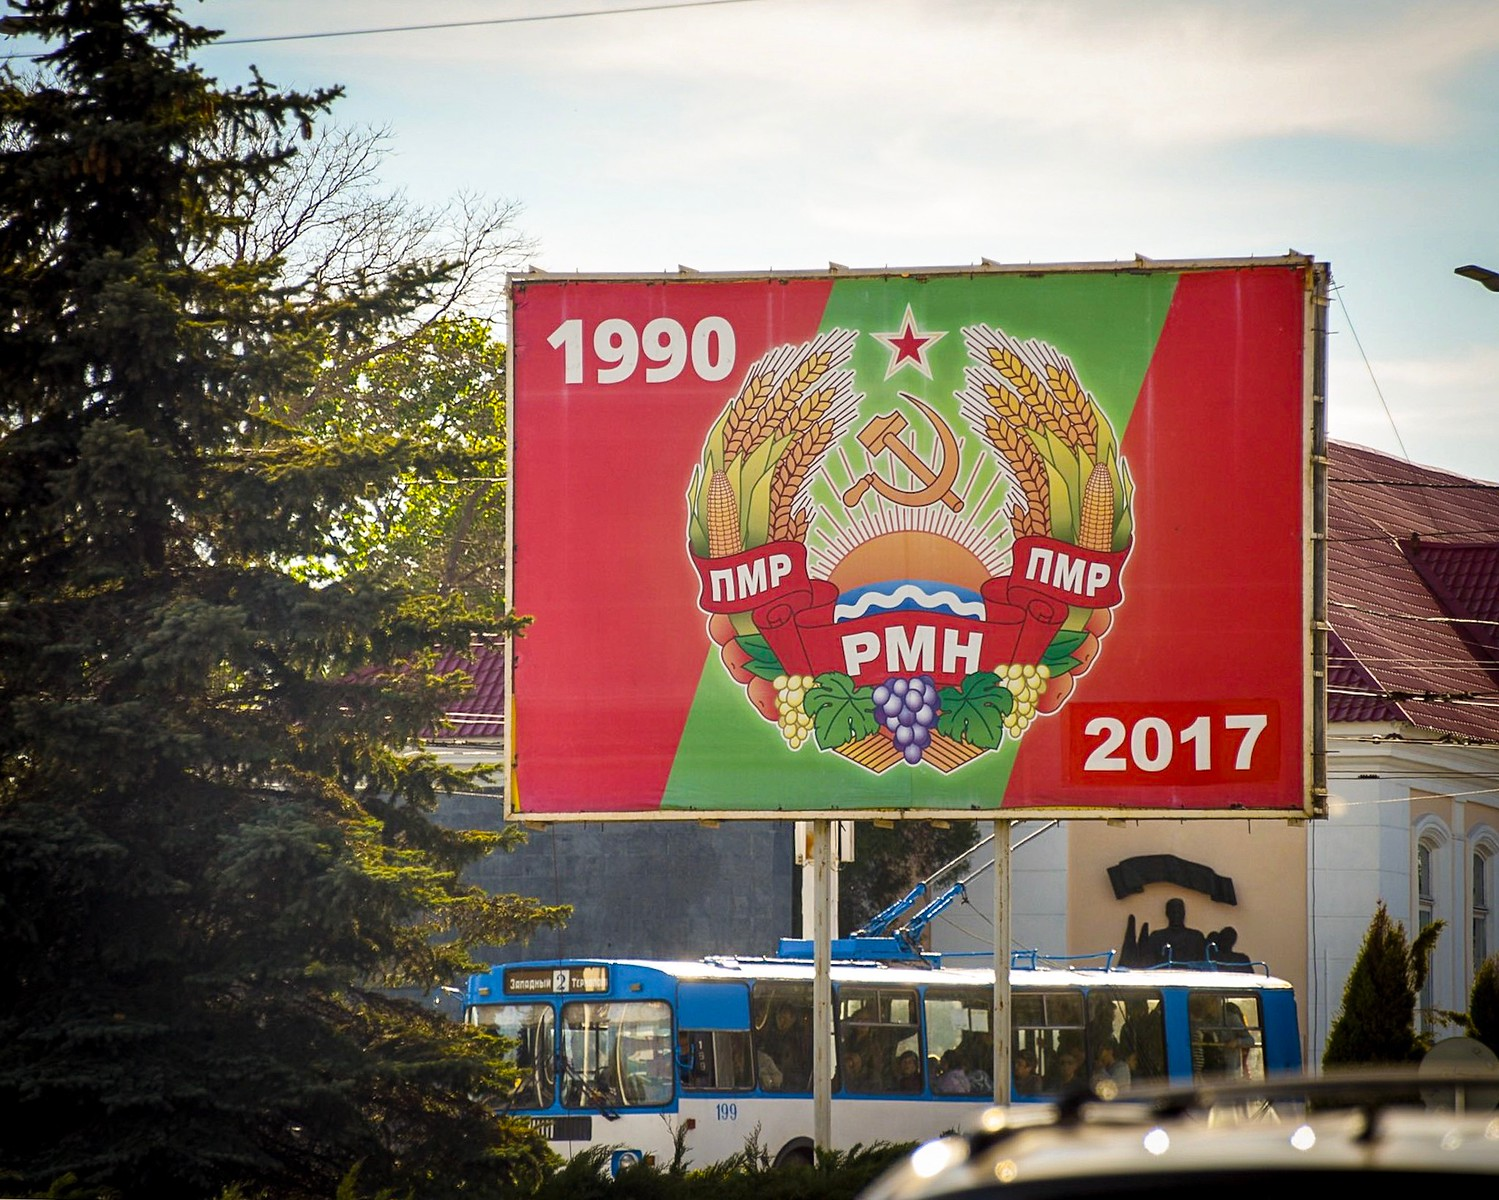 """Traveling to Transnistria, a Day in Soviet Disneyland /></noscript></p><p>After I paid the driver (covering the bribes) and convinced him in broken Russian (our only common language) that I would be fine, I headed into the bus station.</p><p>My mind was prioritized like this:<br /> 1. Find a Restroom<br /> 2. Get Immigration Card<br /> 3. Buy bus ticket to Odessa<br /> 4. See entire country in a single afternoon</p><h2>And That Will Be 5 Rubles</h2><p>I am never more annoyed at how easier male travelers have it as when I'm facing a squat toilet. It's not the humiliation of having to get completely undressed from the waist down that's the problem, it's how much time this adds.</p><p>I ran into the station panicked. By the time I found the restrooms, I had let out an audible sigh of relief.</p><p>""""It had been close, but I was going to be okay!"""" I thought — until I remembered that I didn't have the right currency to get in. The woman sitting in front of me guarding the door felt no sympathy as I bounced from leg to leg getting directions on where to exchange my Moldovan Lei for Transnistrian Rubles.</p><p>Coming back as a proud owner of nearly-fake currency, I paid the entrance fee, ran to the nearest stall, and, seeing the porcelain foot grips of the squat toilet on the floor in front of me, gritted my teeth to silence my very real shriek.</p><p><img class="""